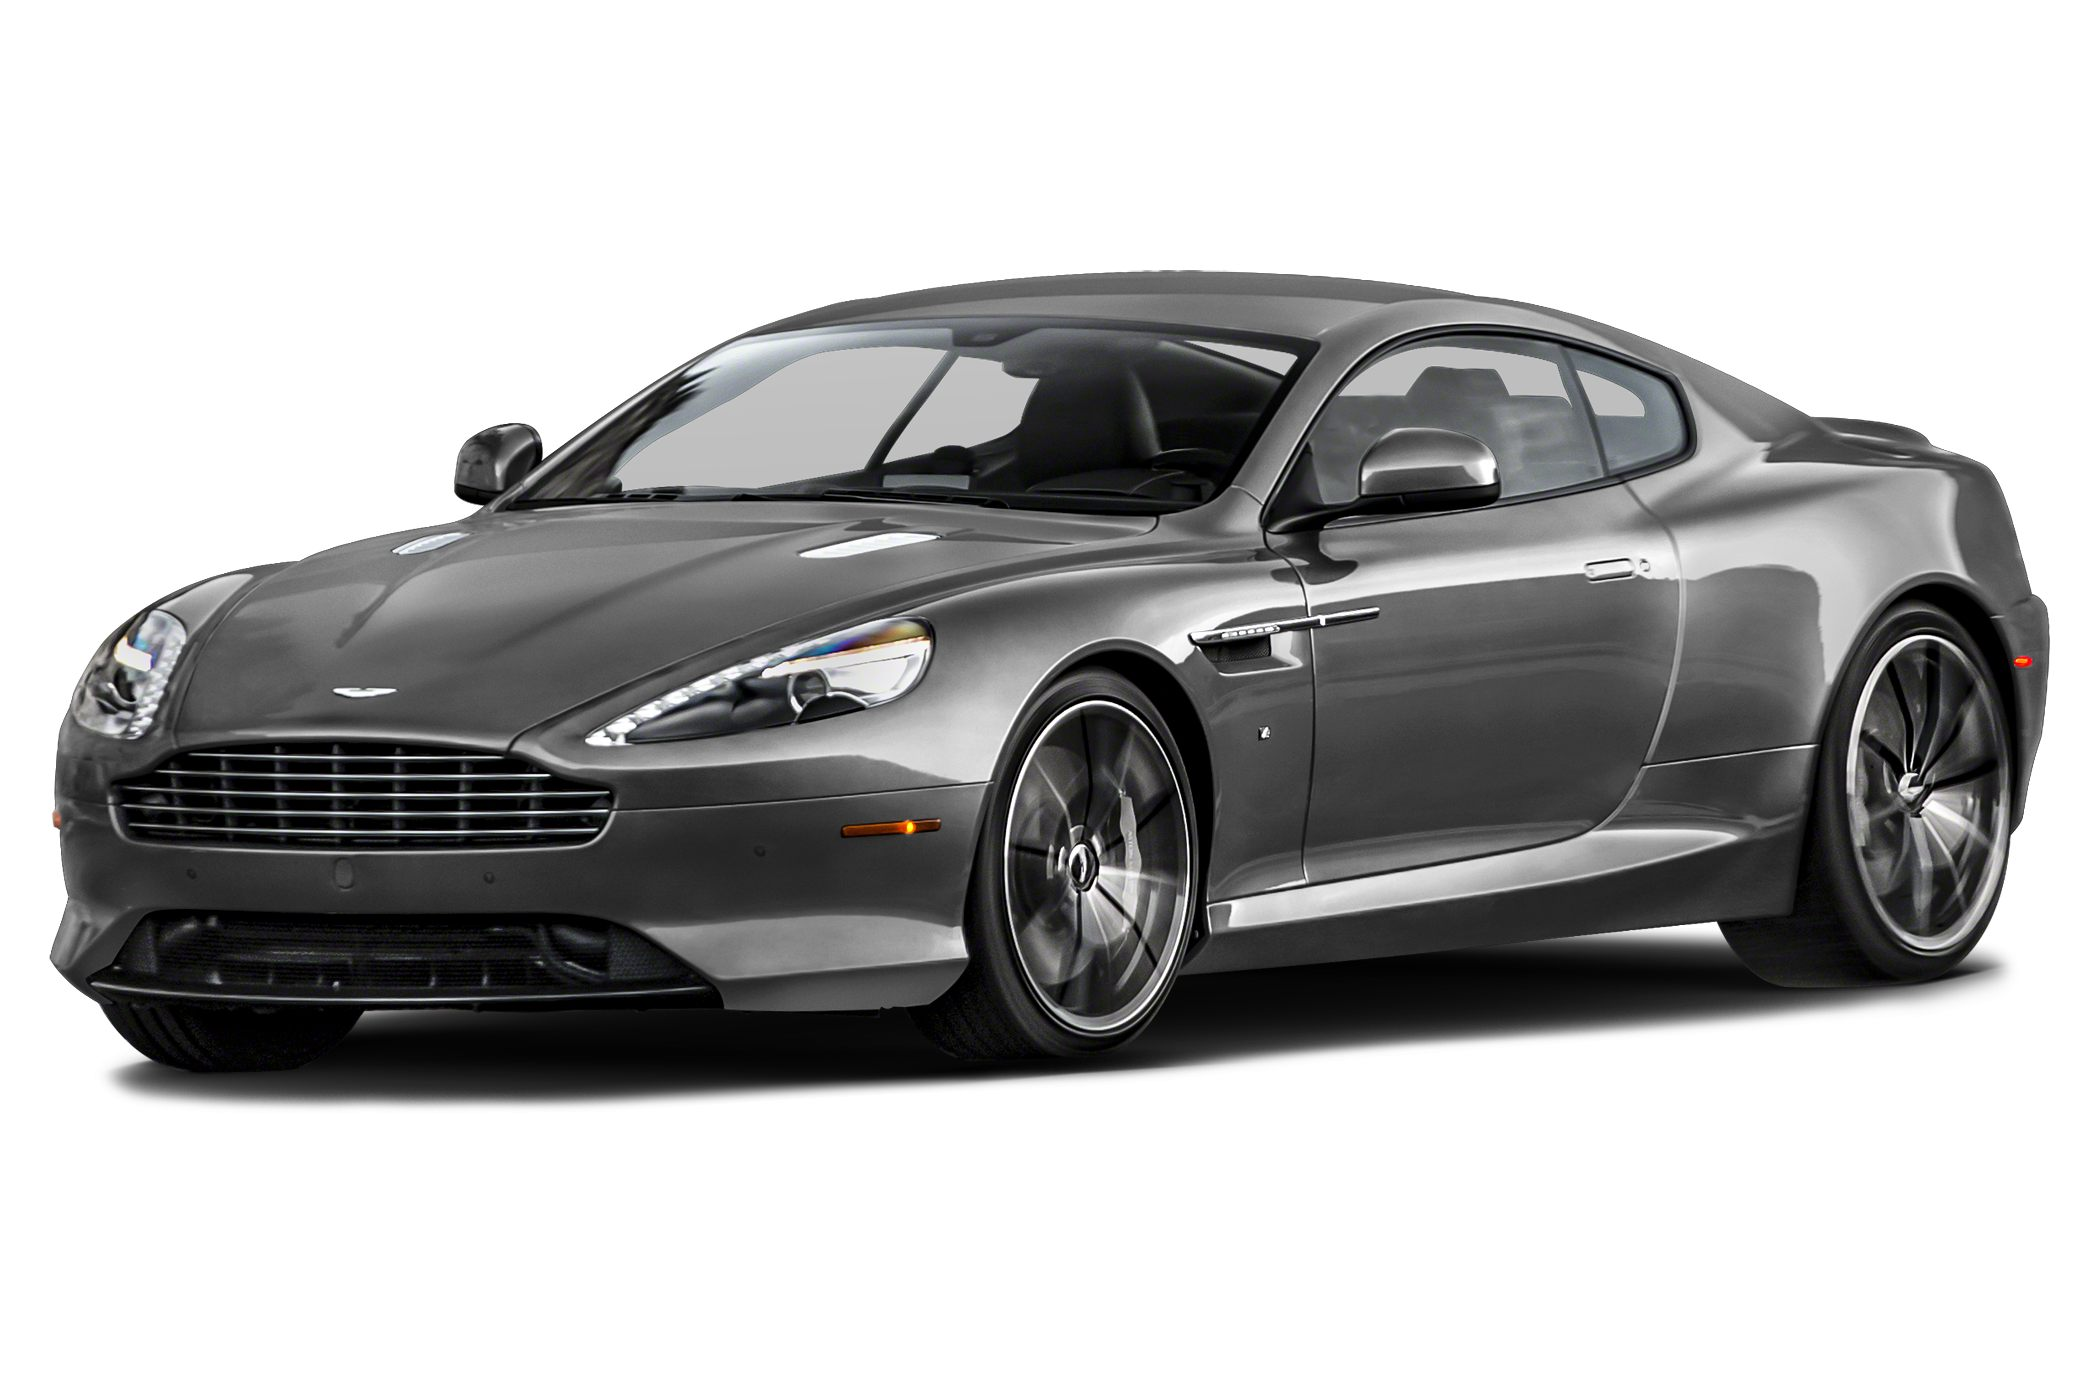 aston martin db9 news photos and buying information. Black Bedroom Furniture Sets. Home Design Ideas